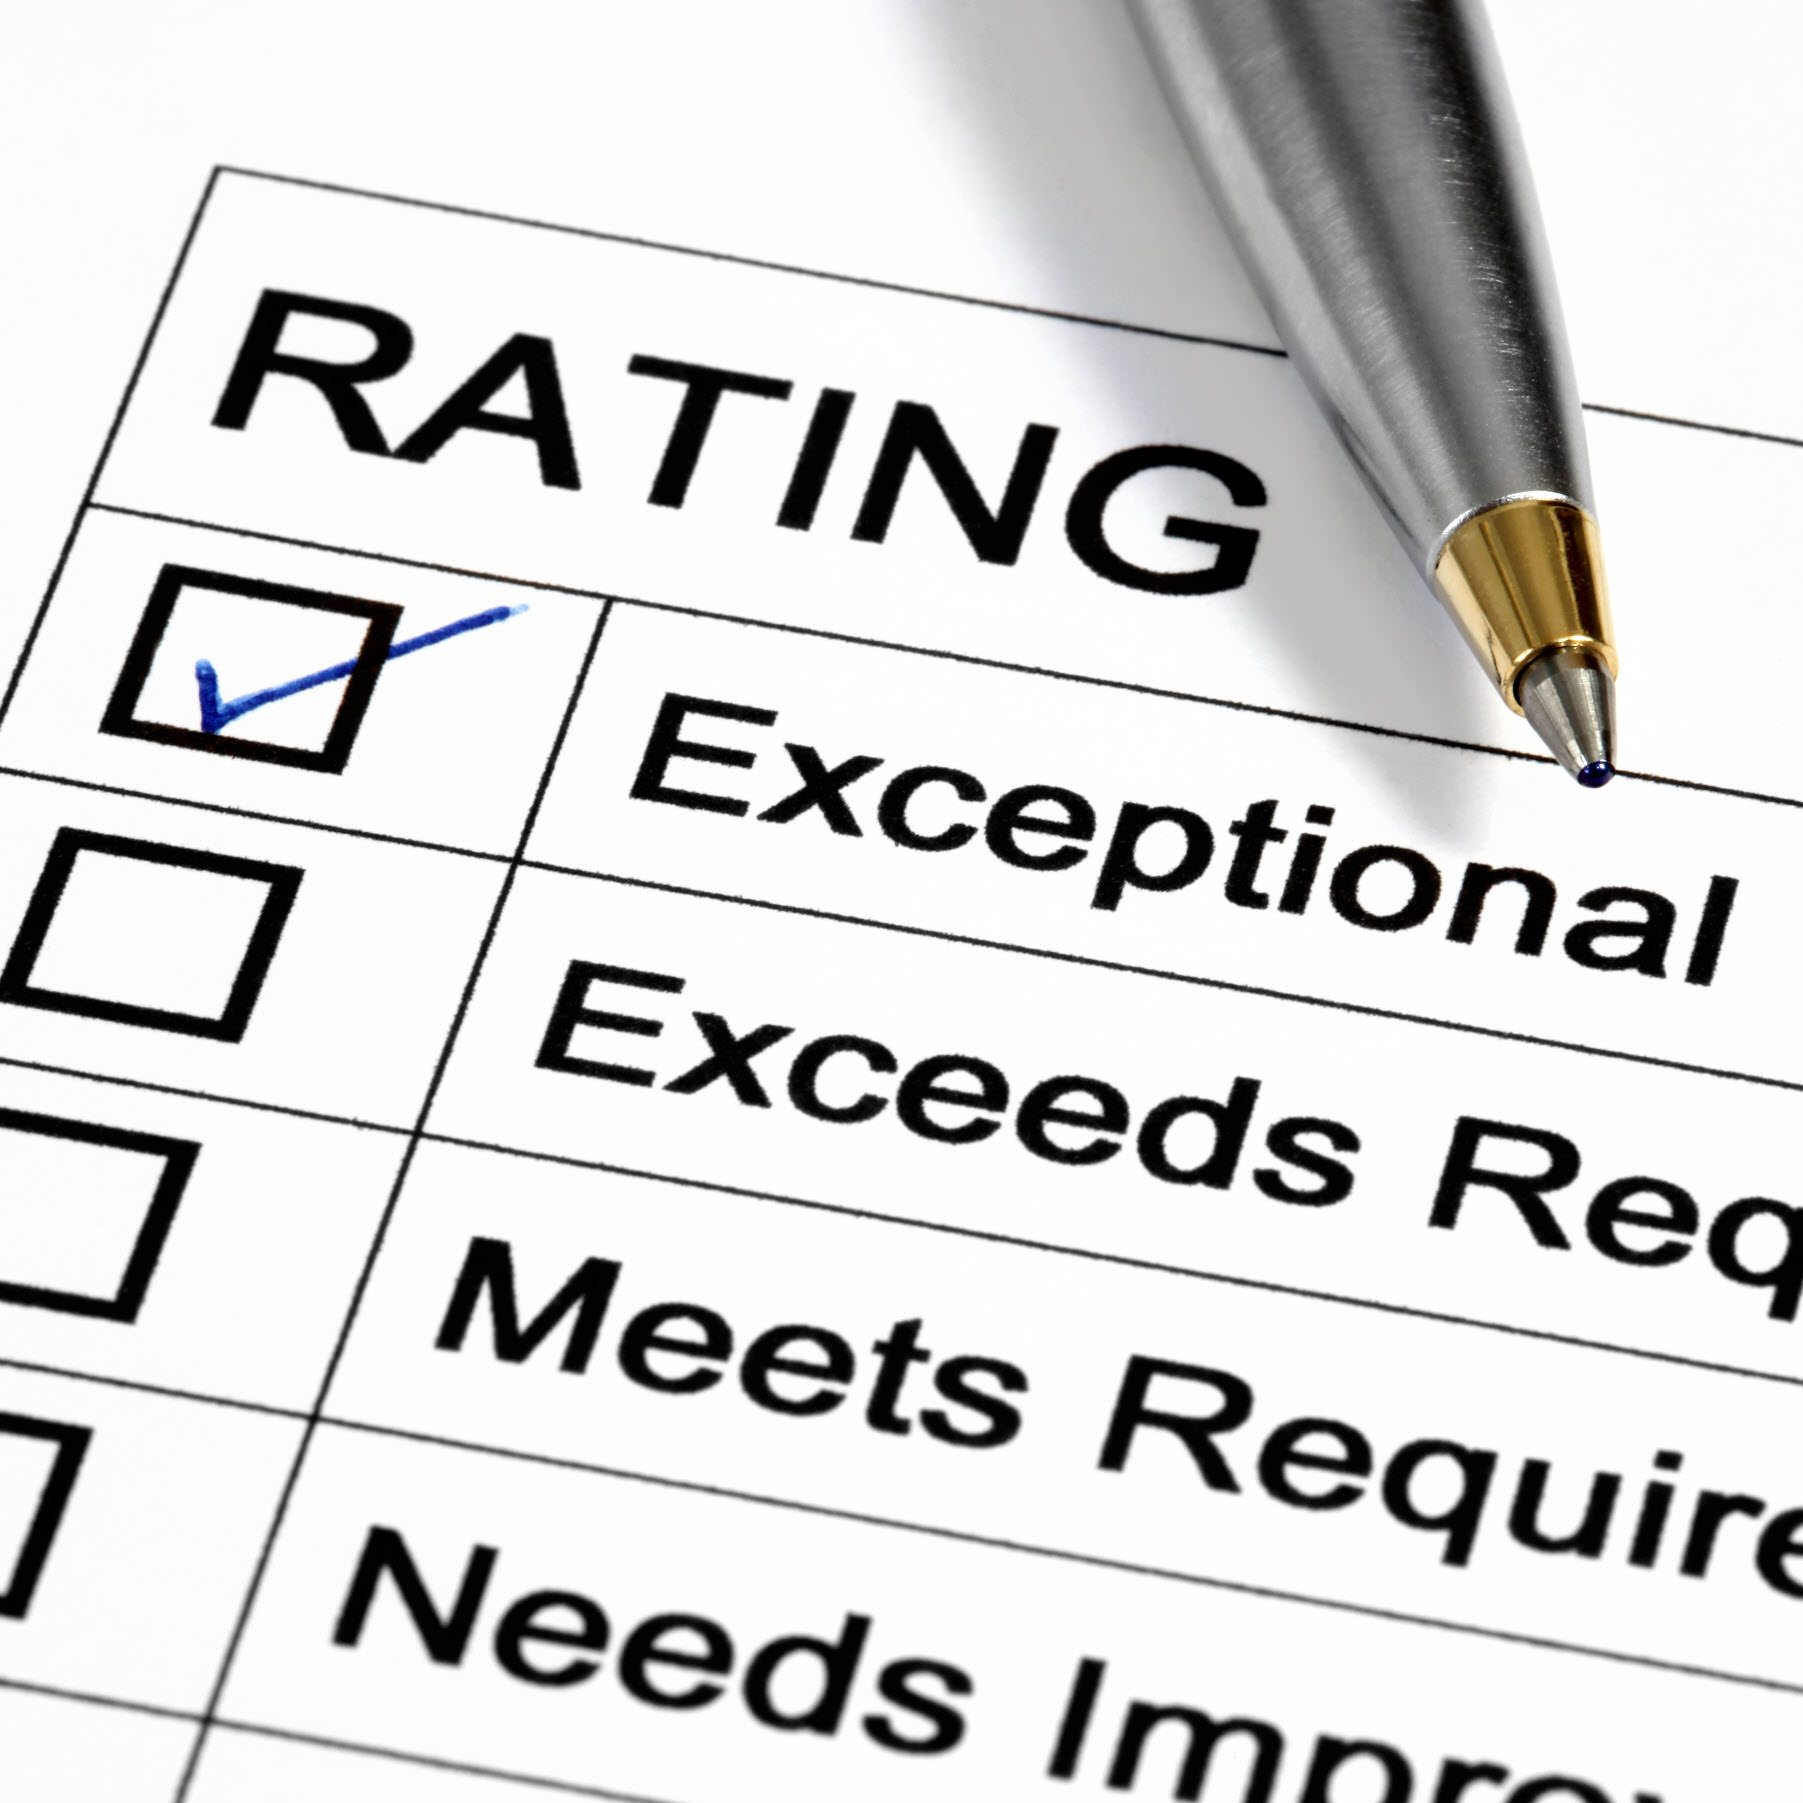 Performance Review Examples - Criteria and Phrases